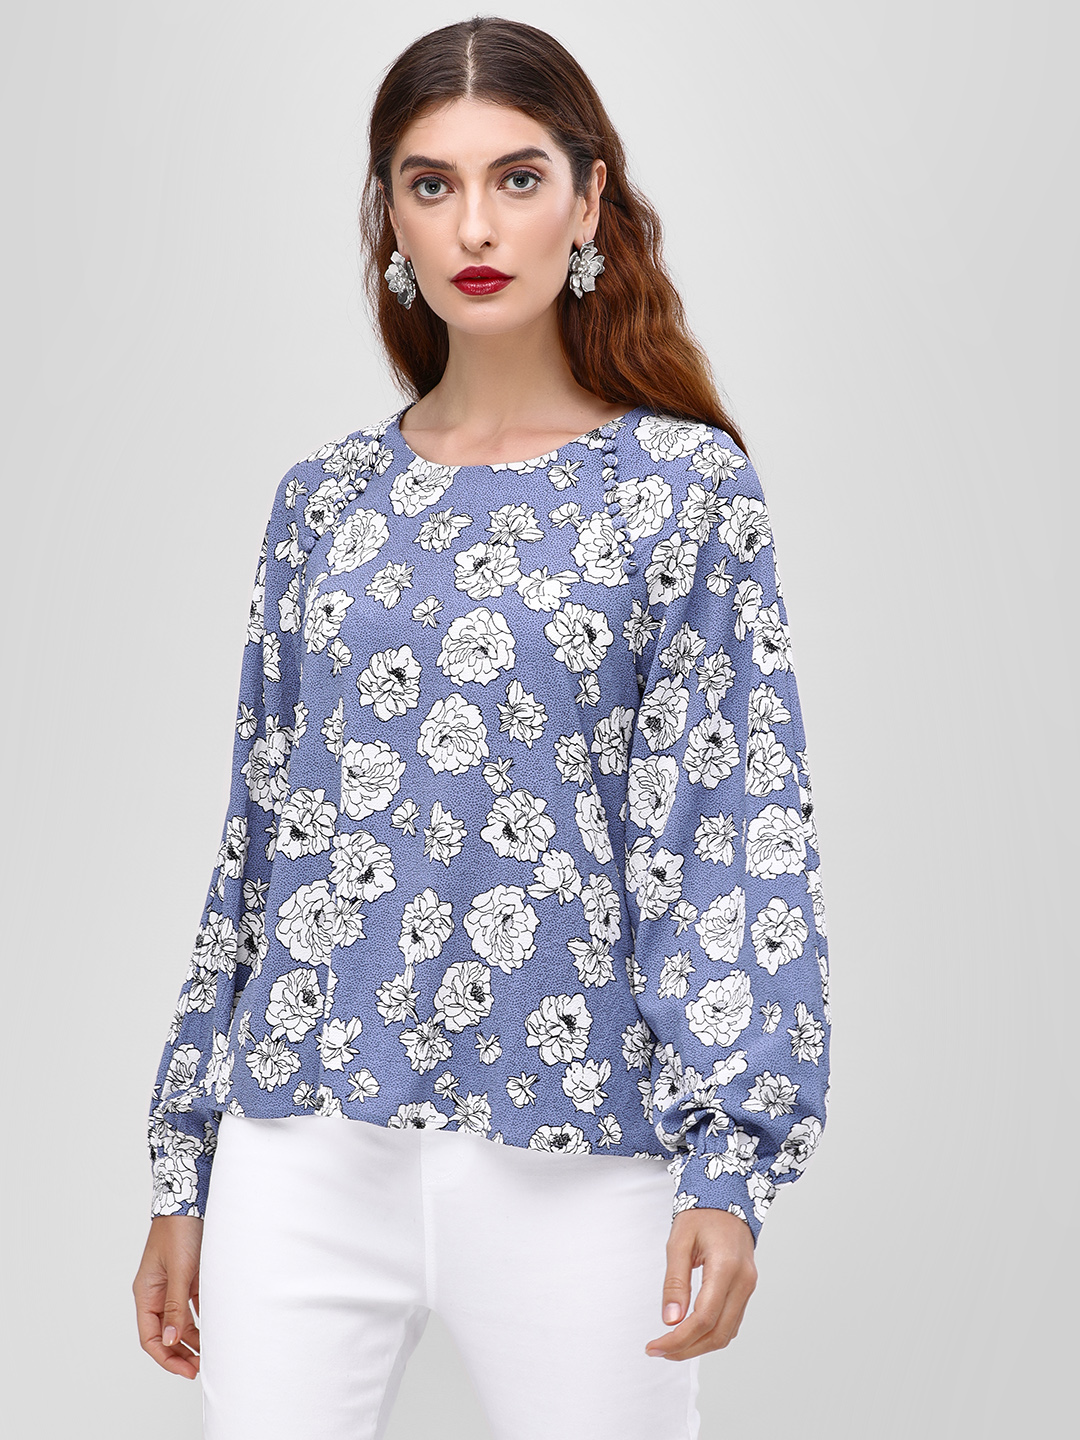 Cover Story Print Floral Printed Long Sleeve Blouse 1